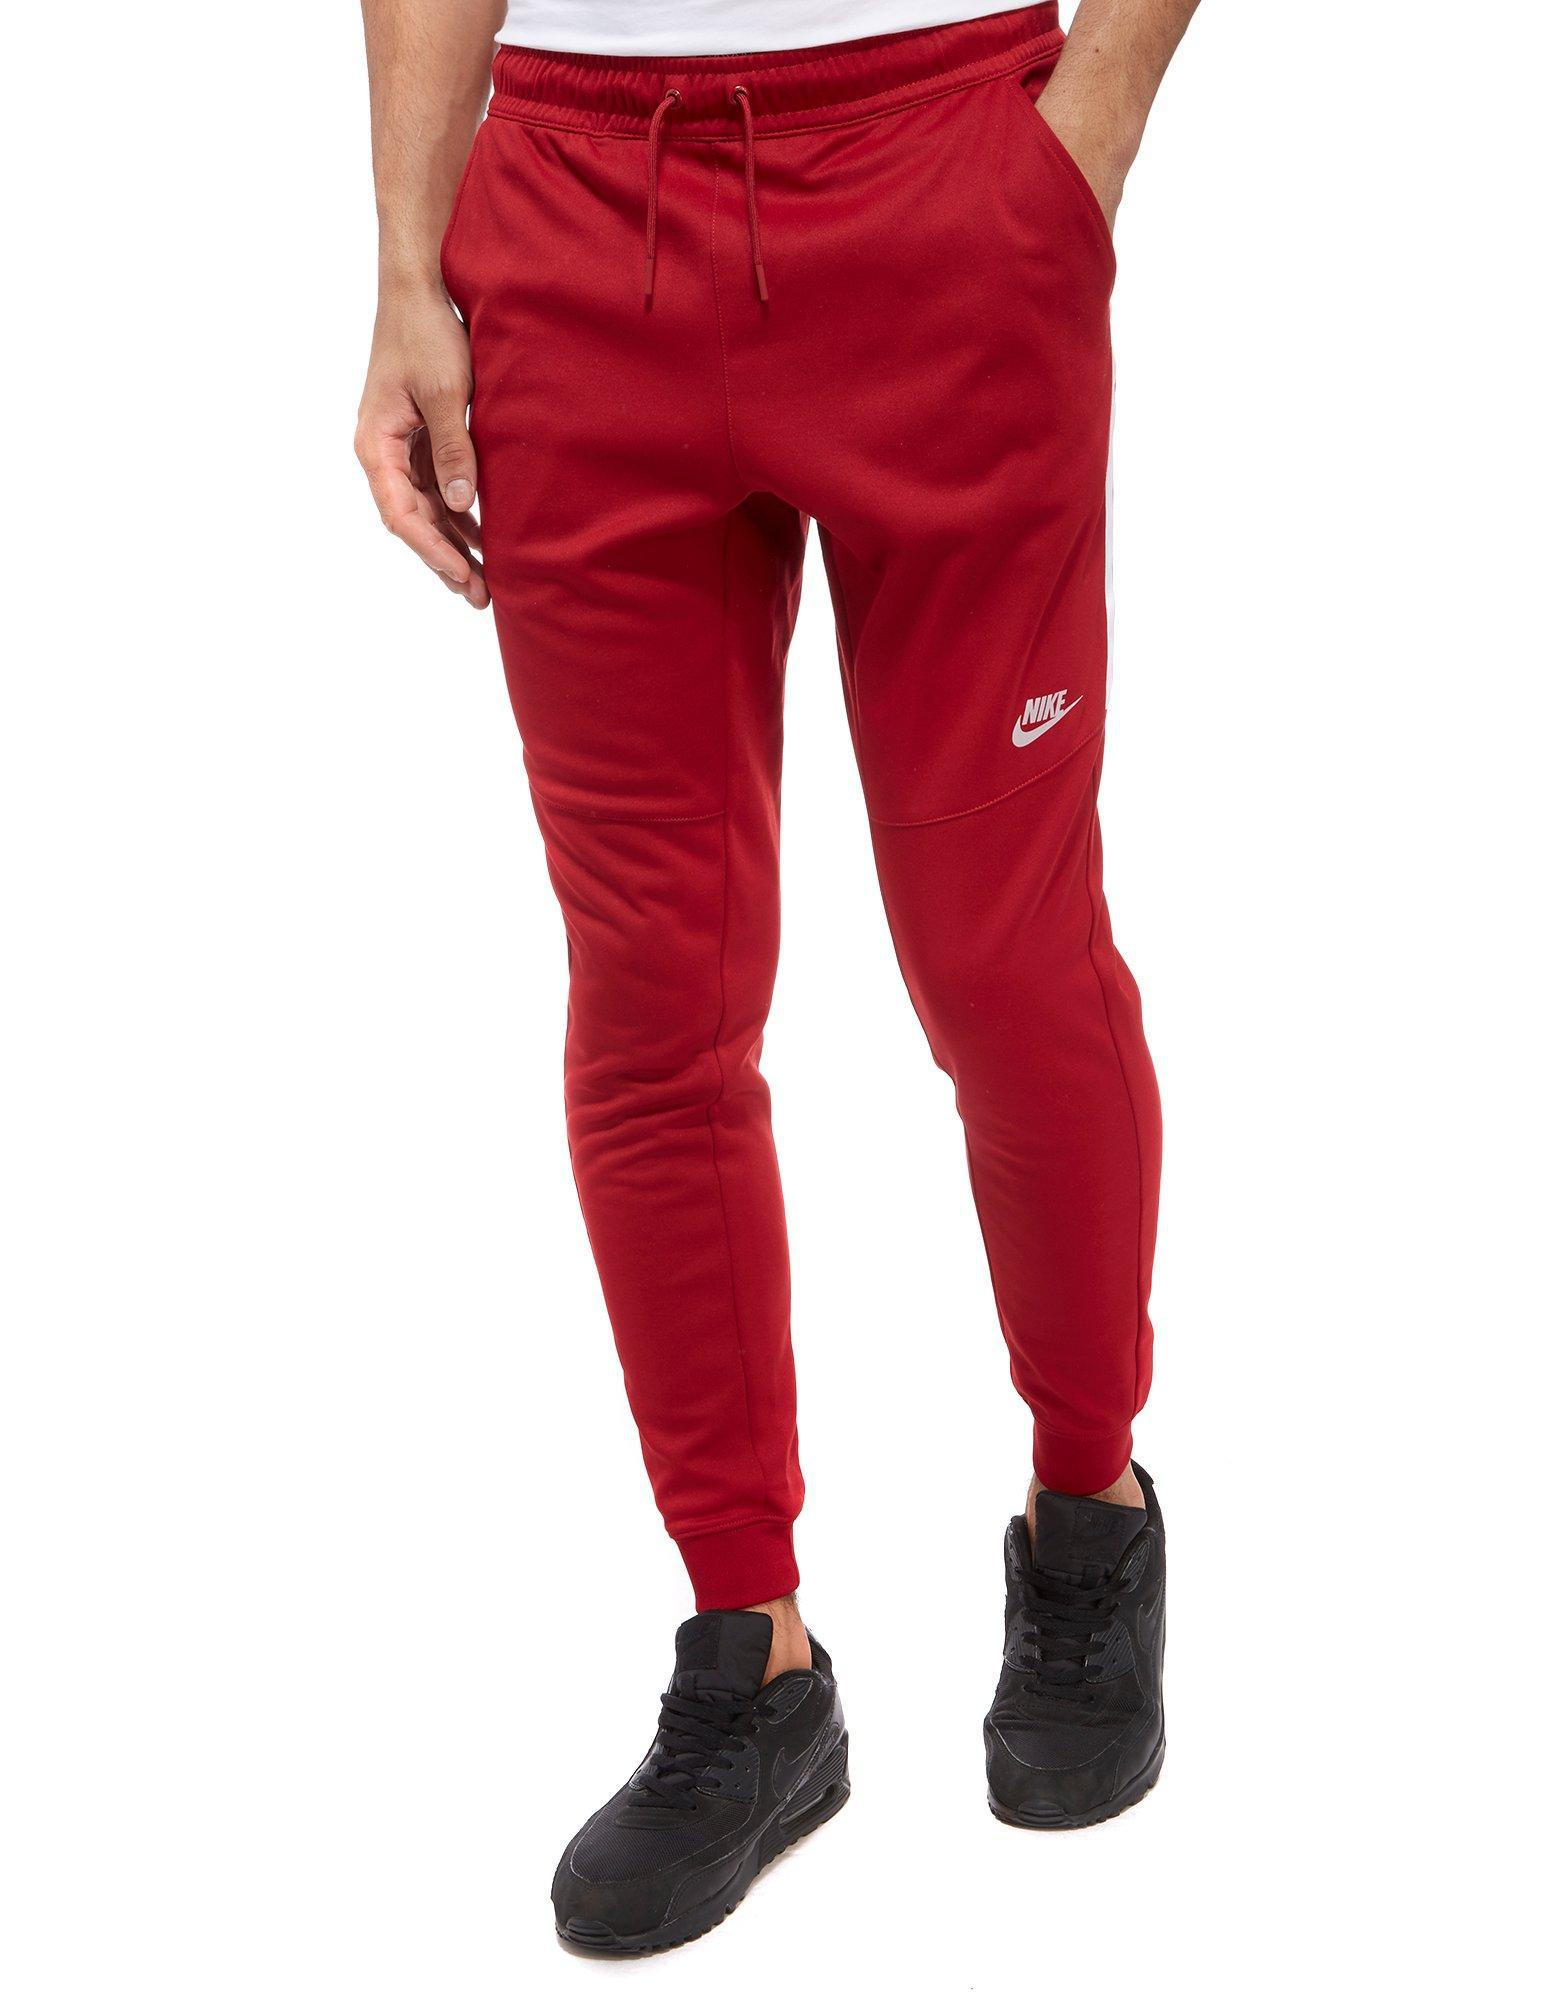 c6aee3dfe21 Nike Red Tribute Track Pants for men